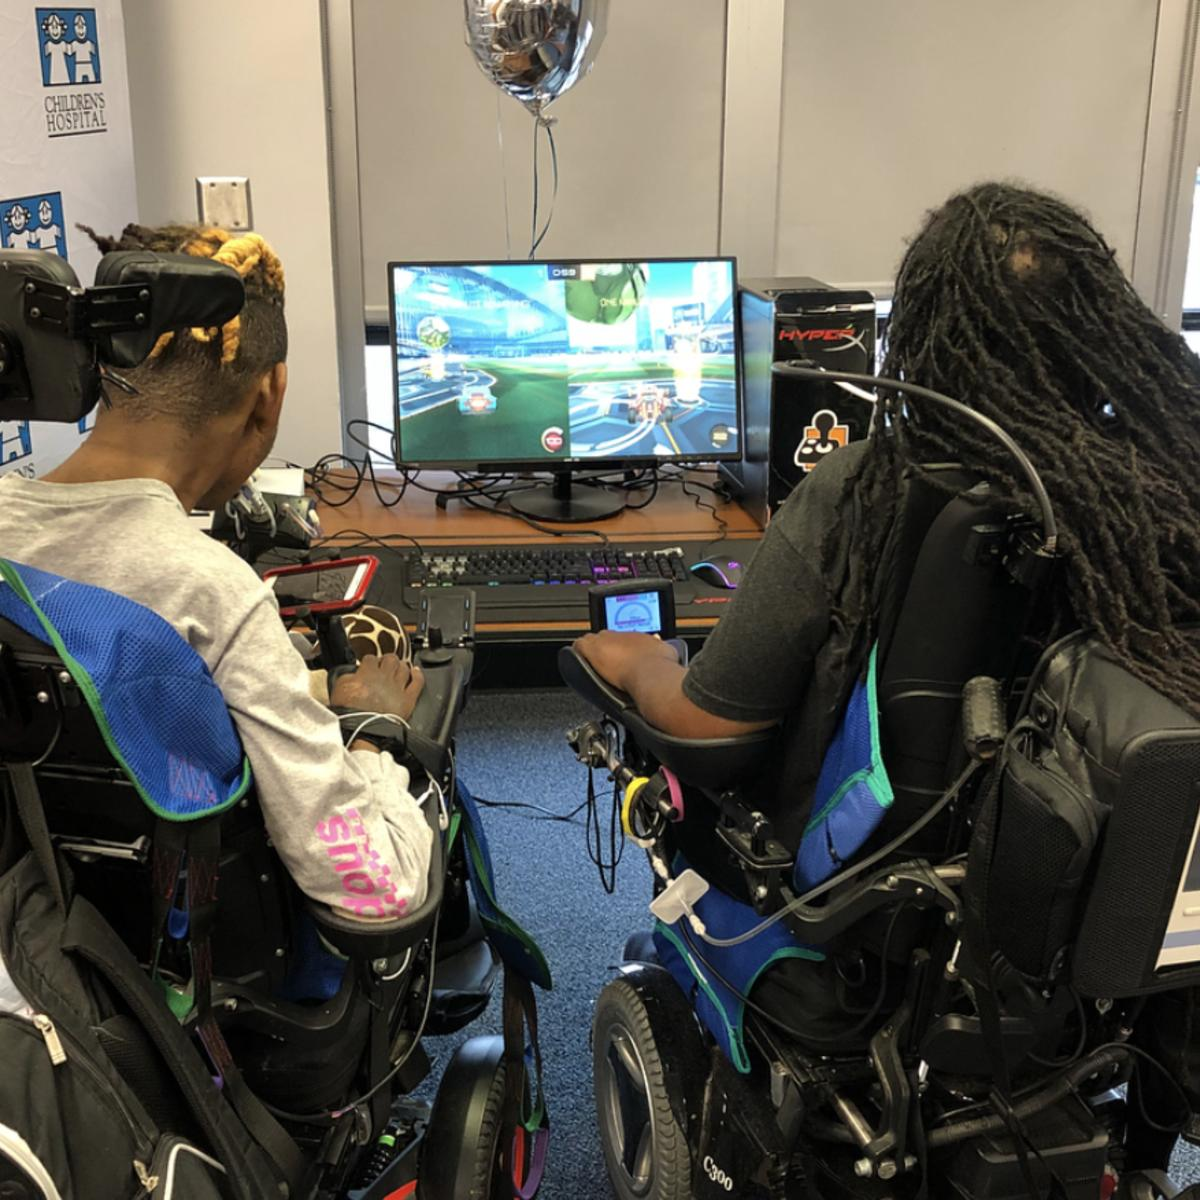 AbleGamers